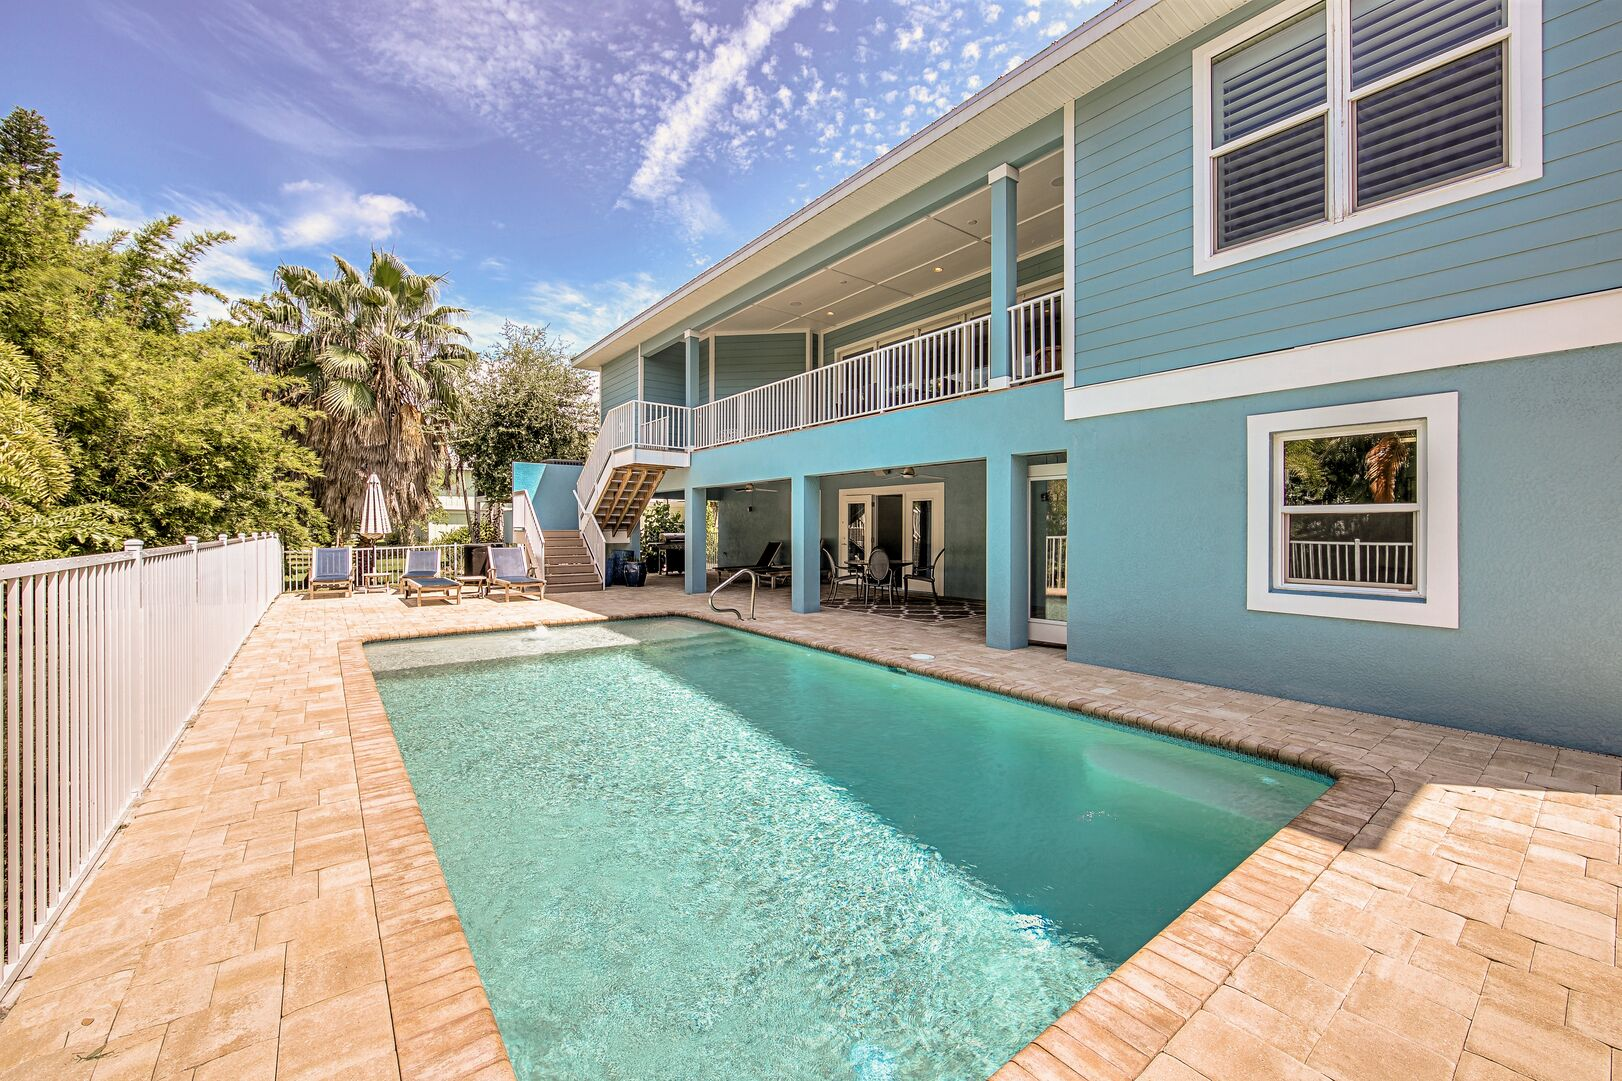 This vacation rental near Fort Myers Beach has a pool